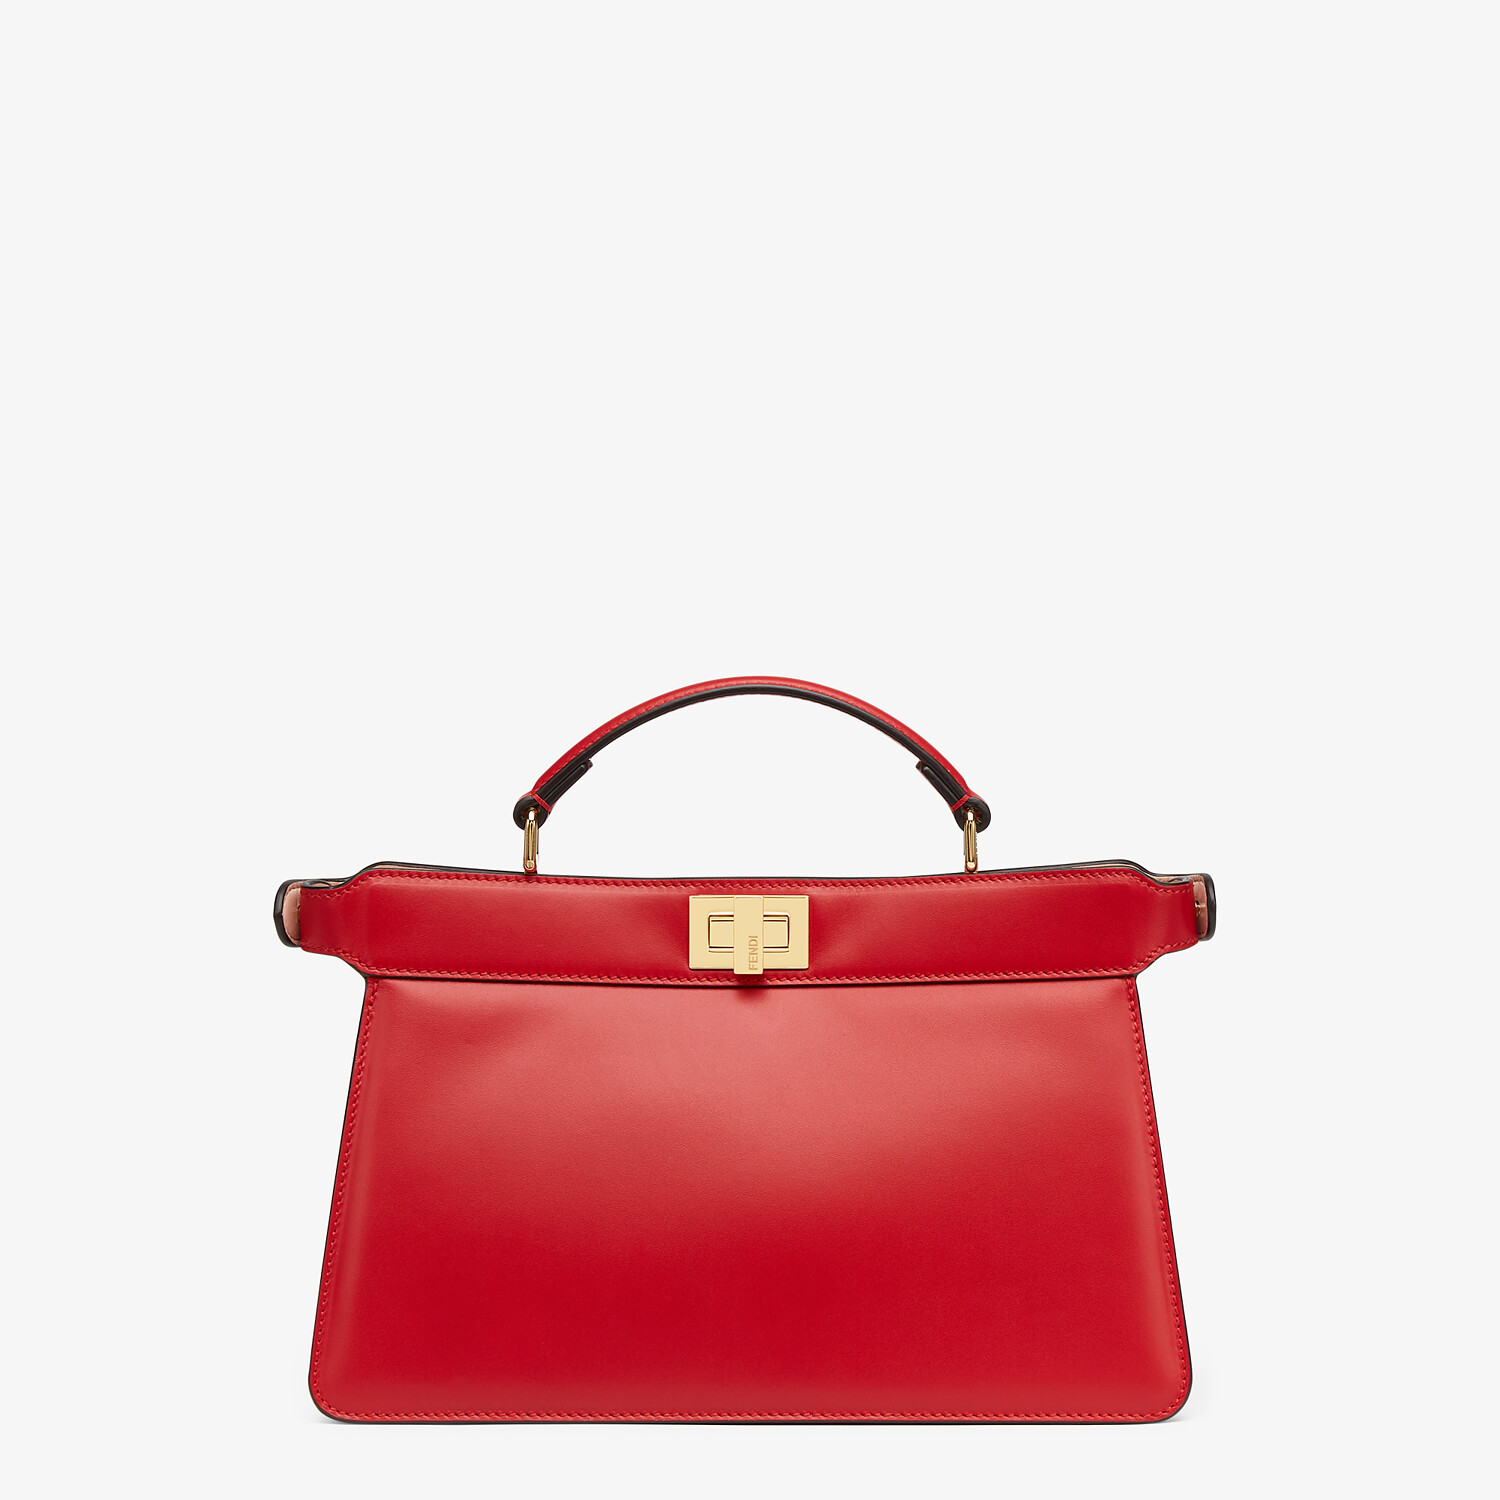 FENDI PEEKABOO ISEEU EAST-WEST - Red leather bag - view 4 detail